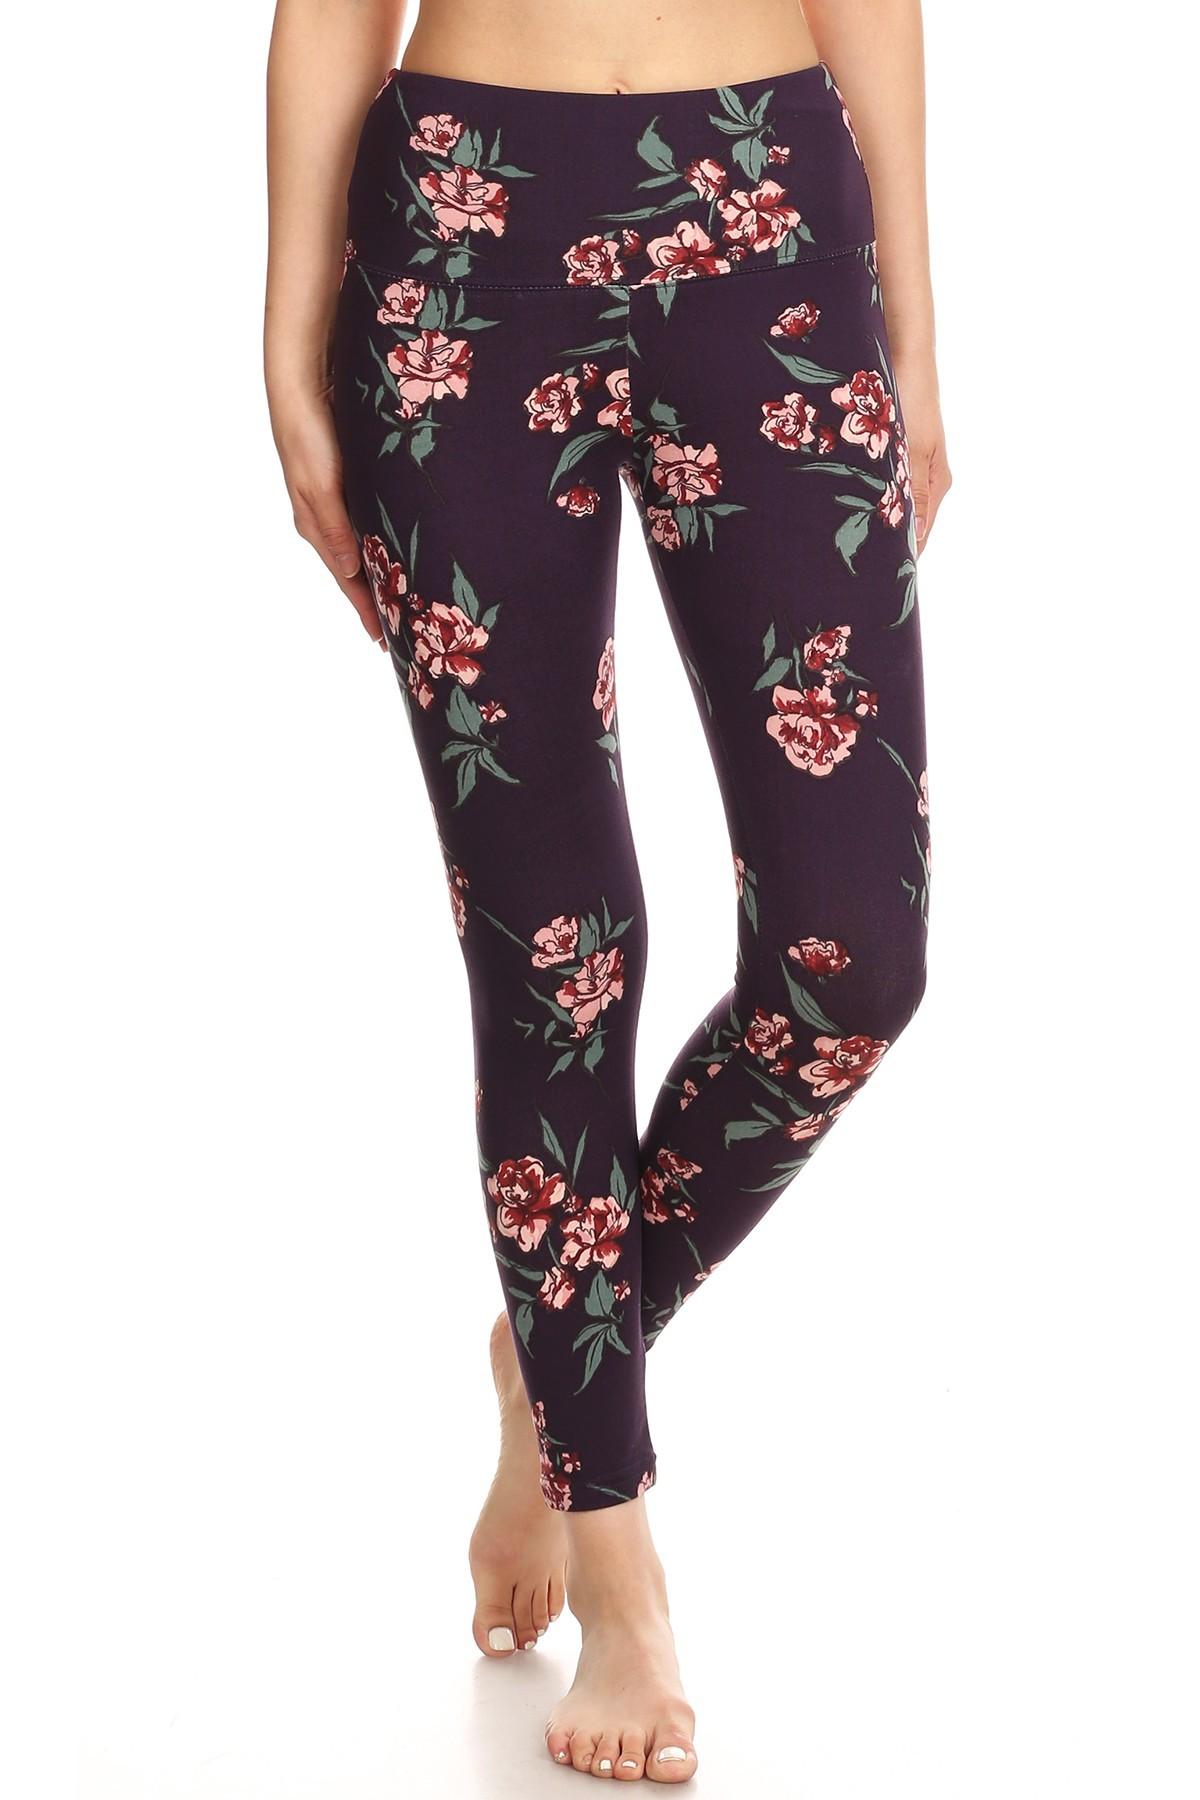 GRAPE/RED FLORAL PRINT HIGH WAIST FLEECE LINED ANKLE LEGGING#8L76-05